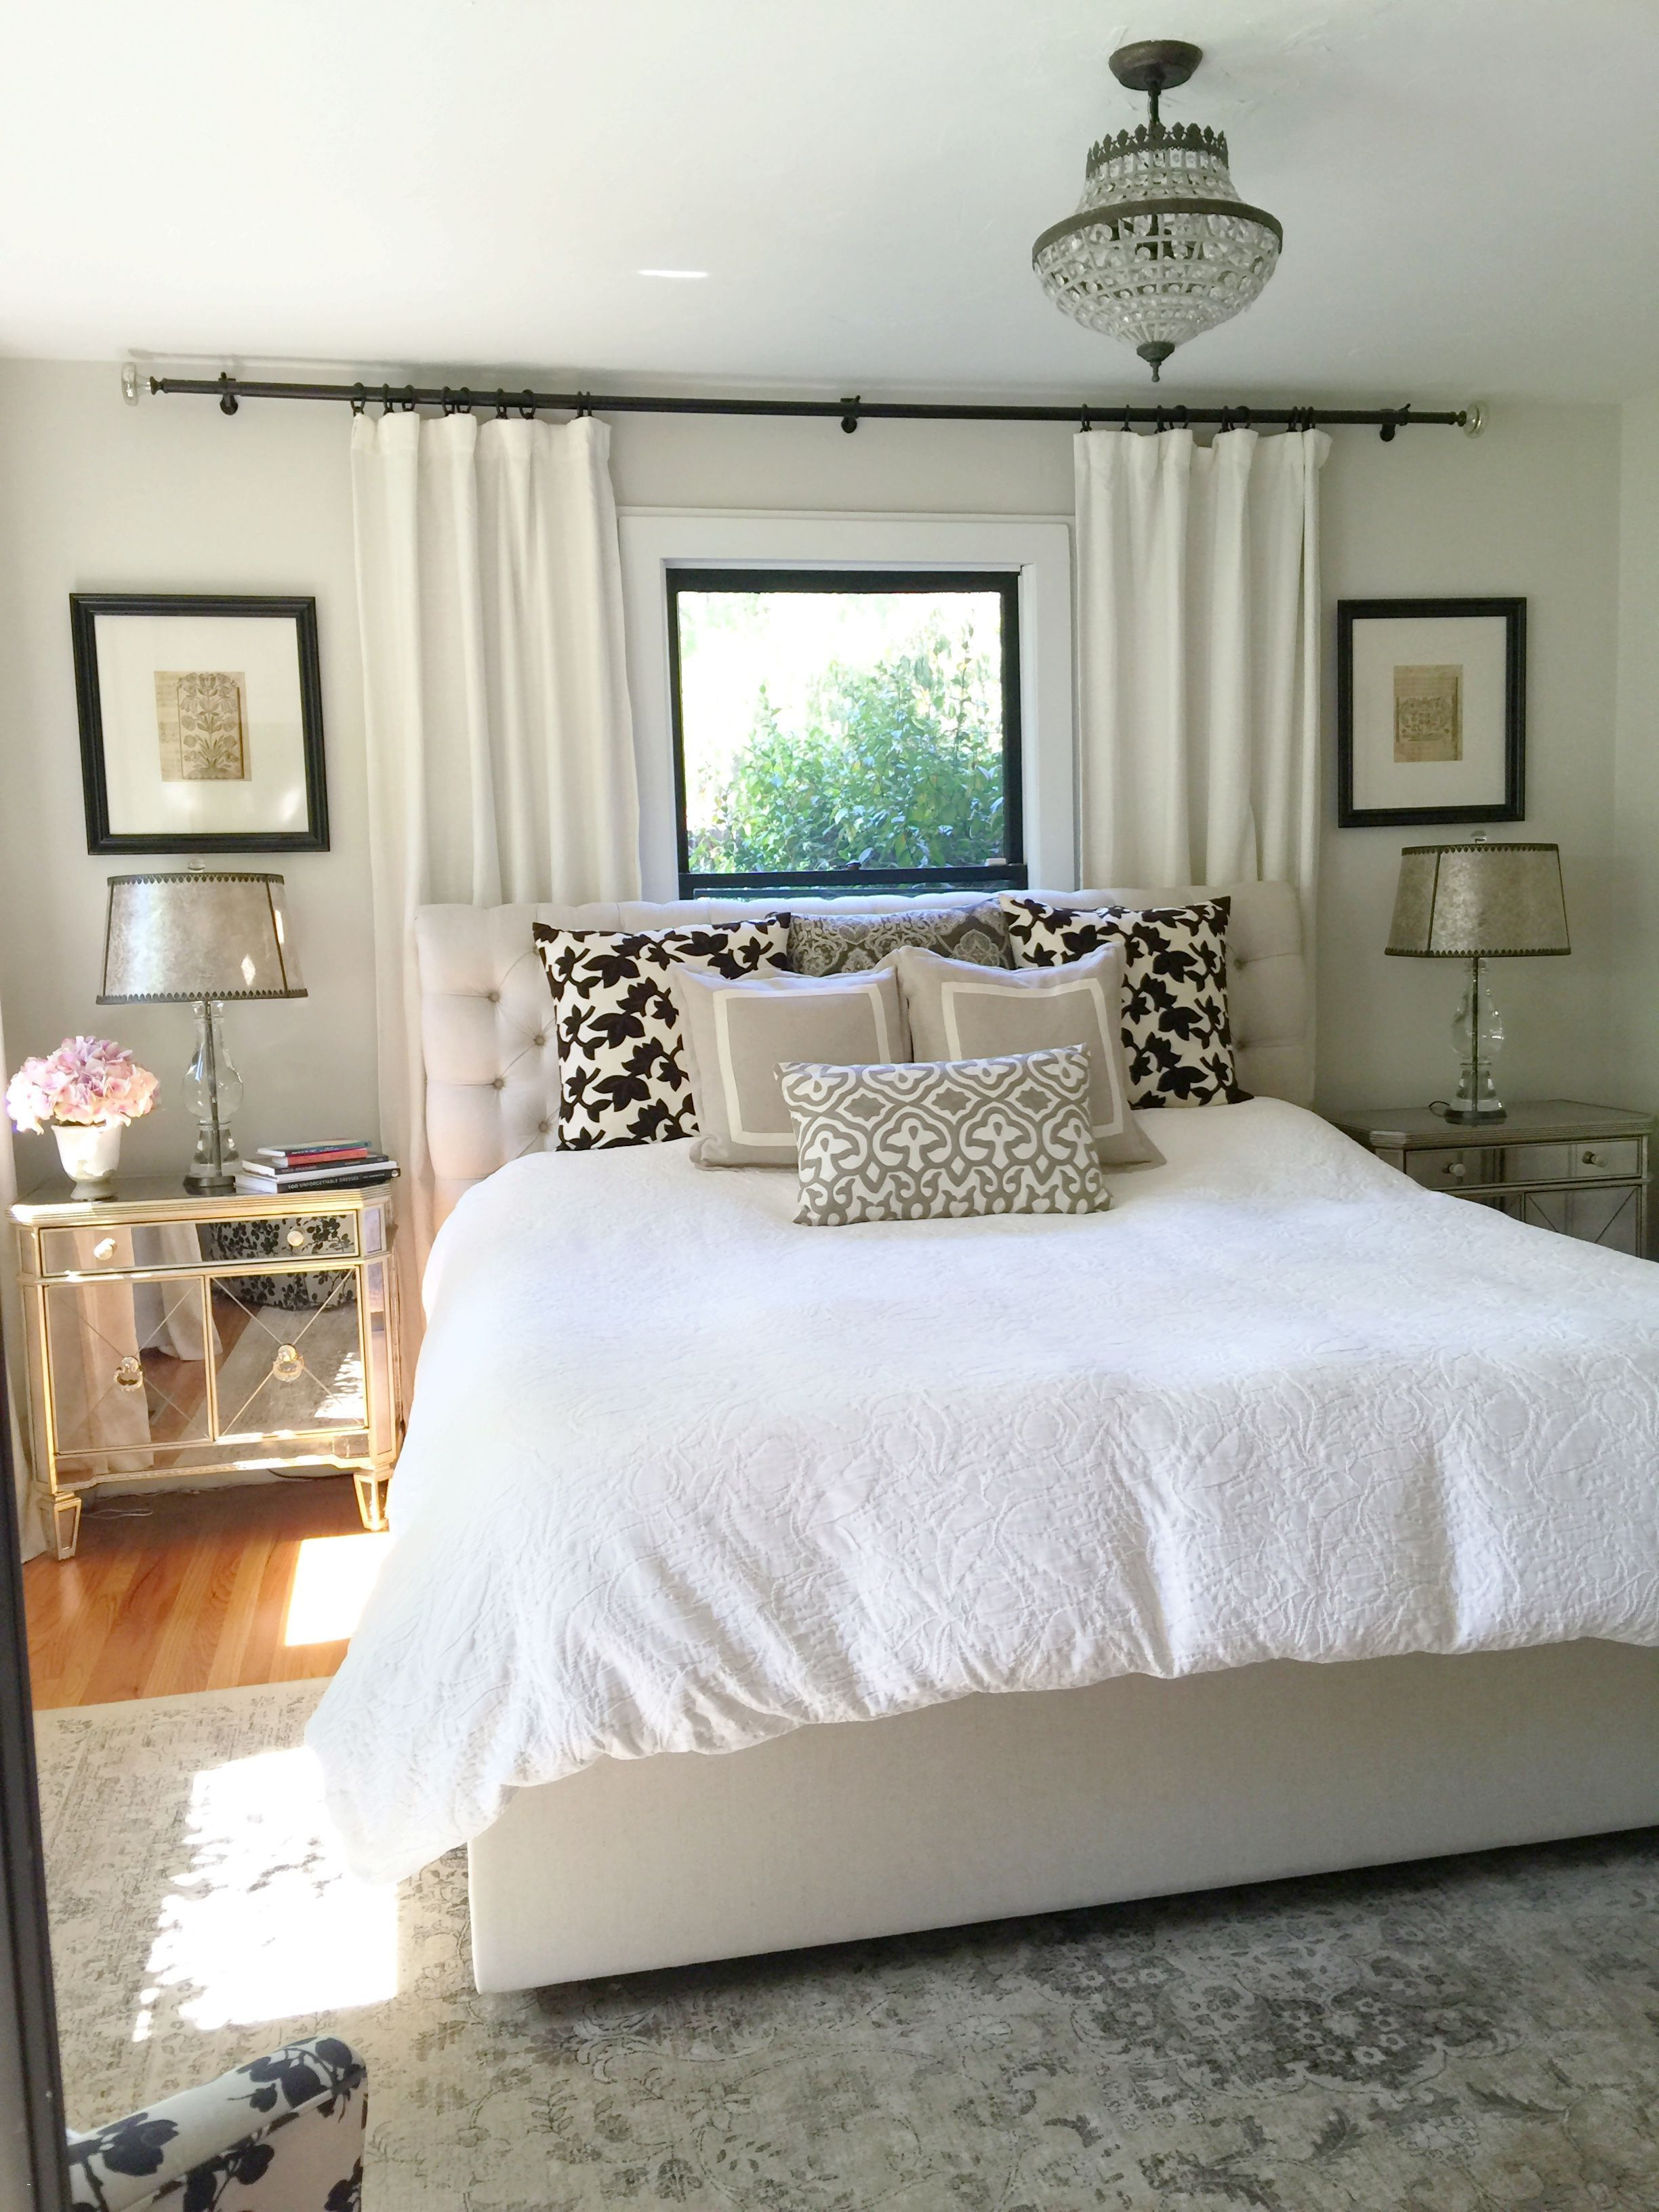 max wonderful sheets bedroom with goods duvet set marshalls piece cool cotton full tahari cover studio for bedding ideas comforters decoration paisley nicole home miller bed pattern